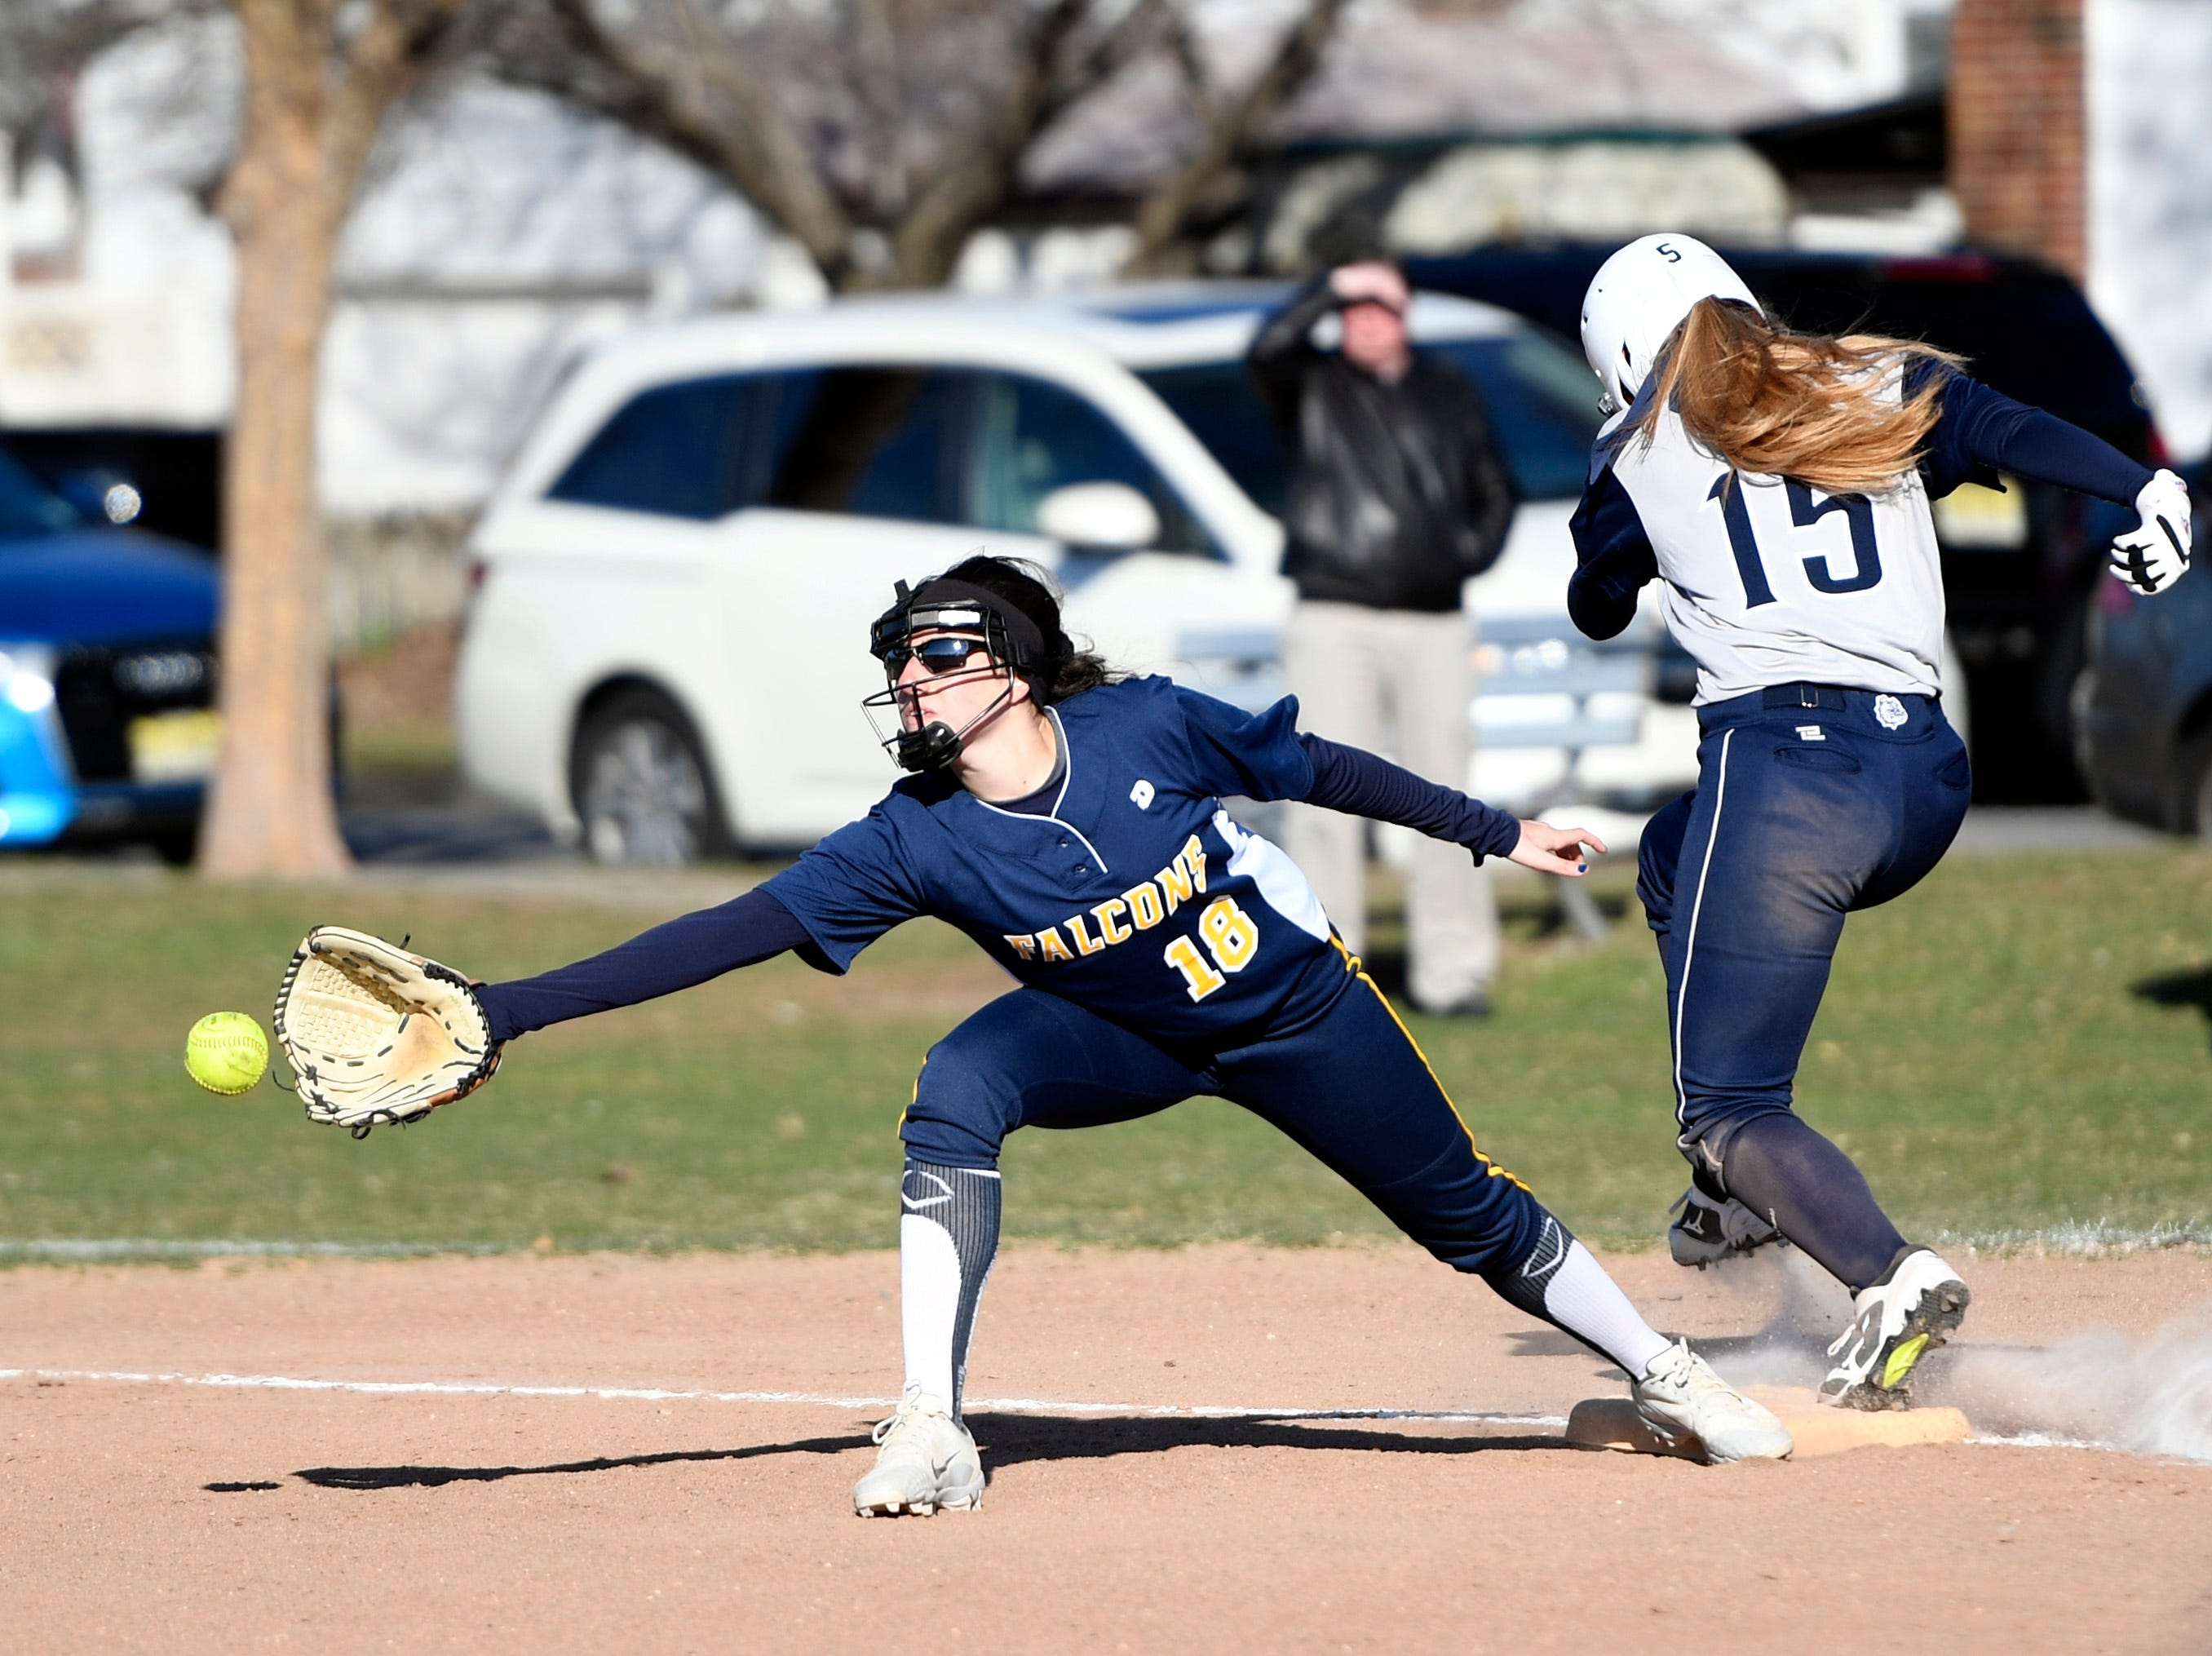 Rutherford's Jordan Finelli (15) is safe at first as Saddle Brook's Jill Berardo reaches for the ball on Monday, April 1, 2019, in Rutherford. Rutherford defeated Saddle Brook in an 11-10 walk-off win for the first game of the season.